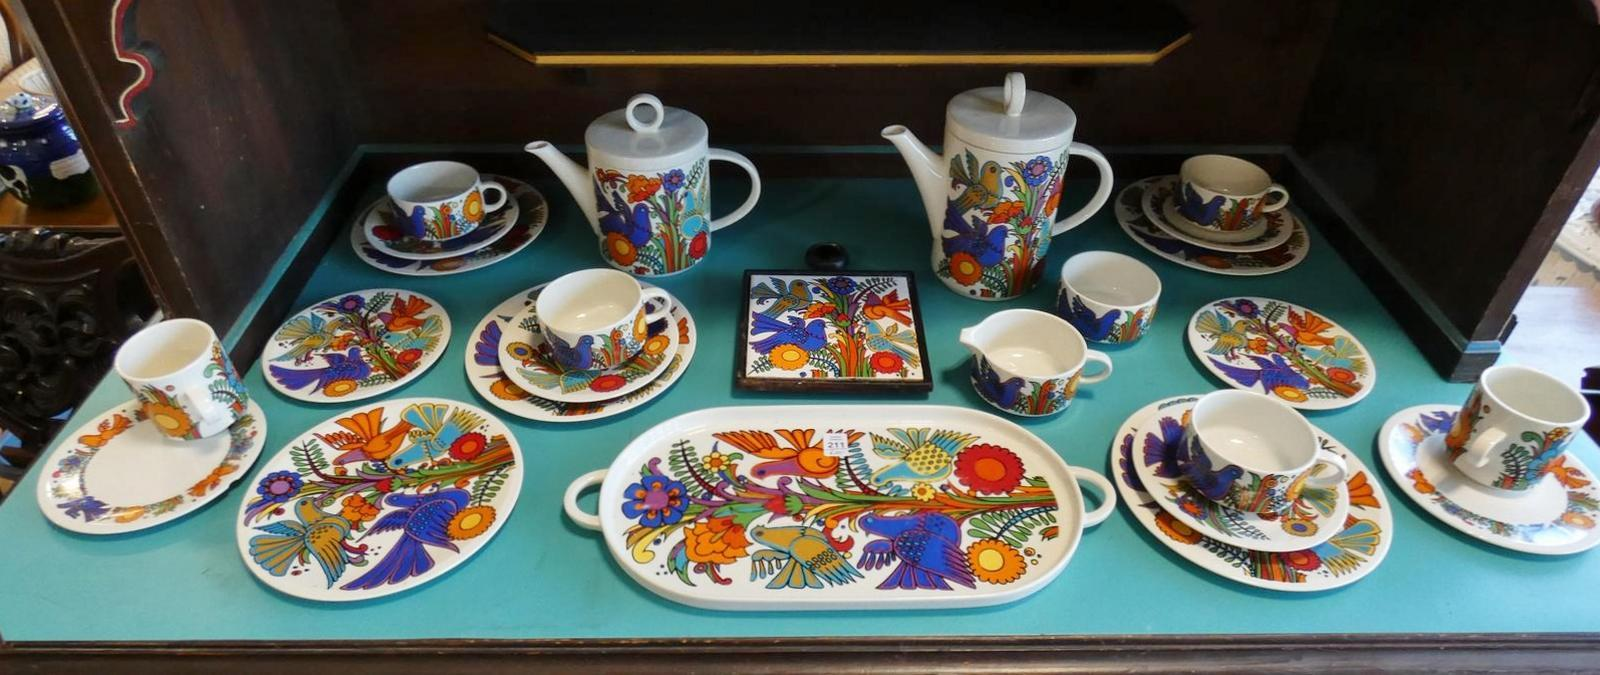 VILLEROY AND BOCH DISHES